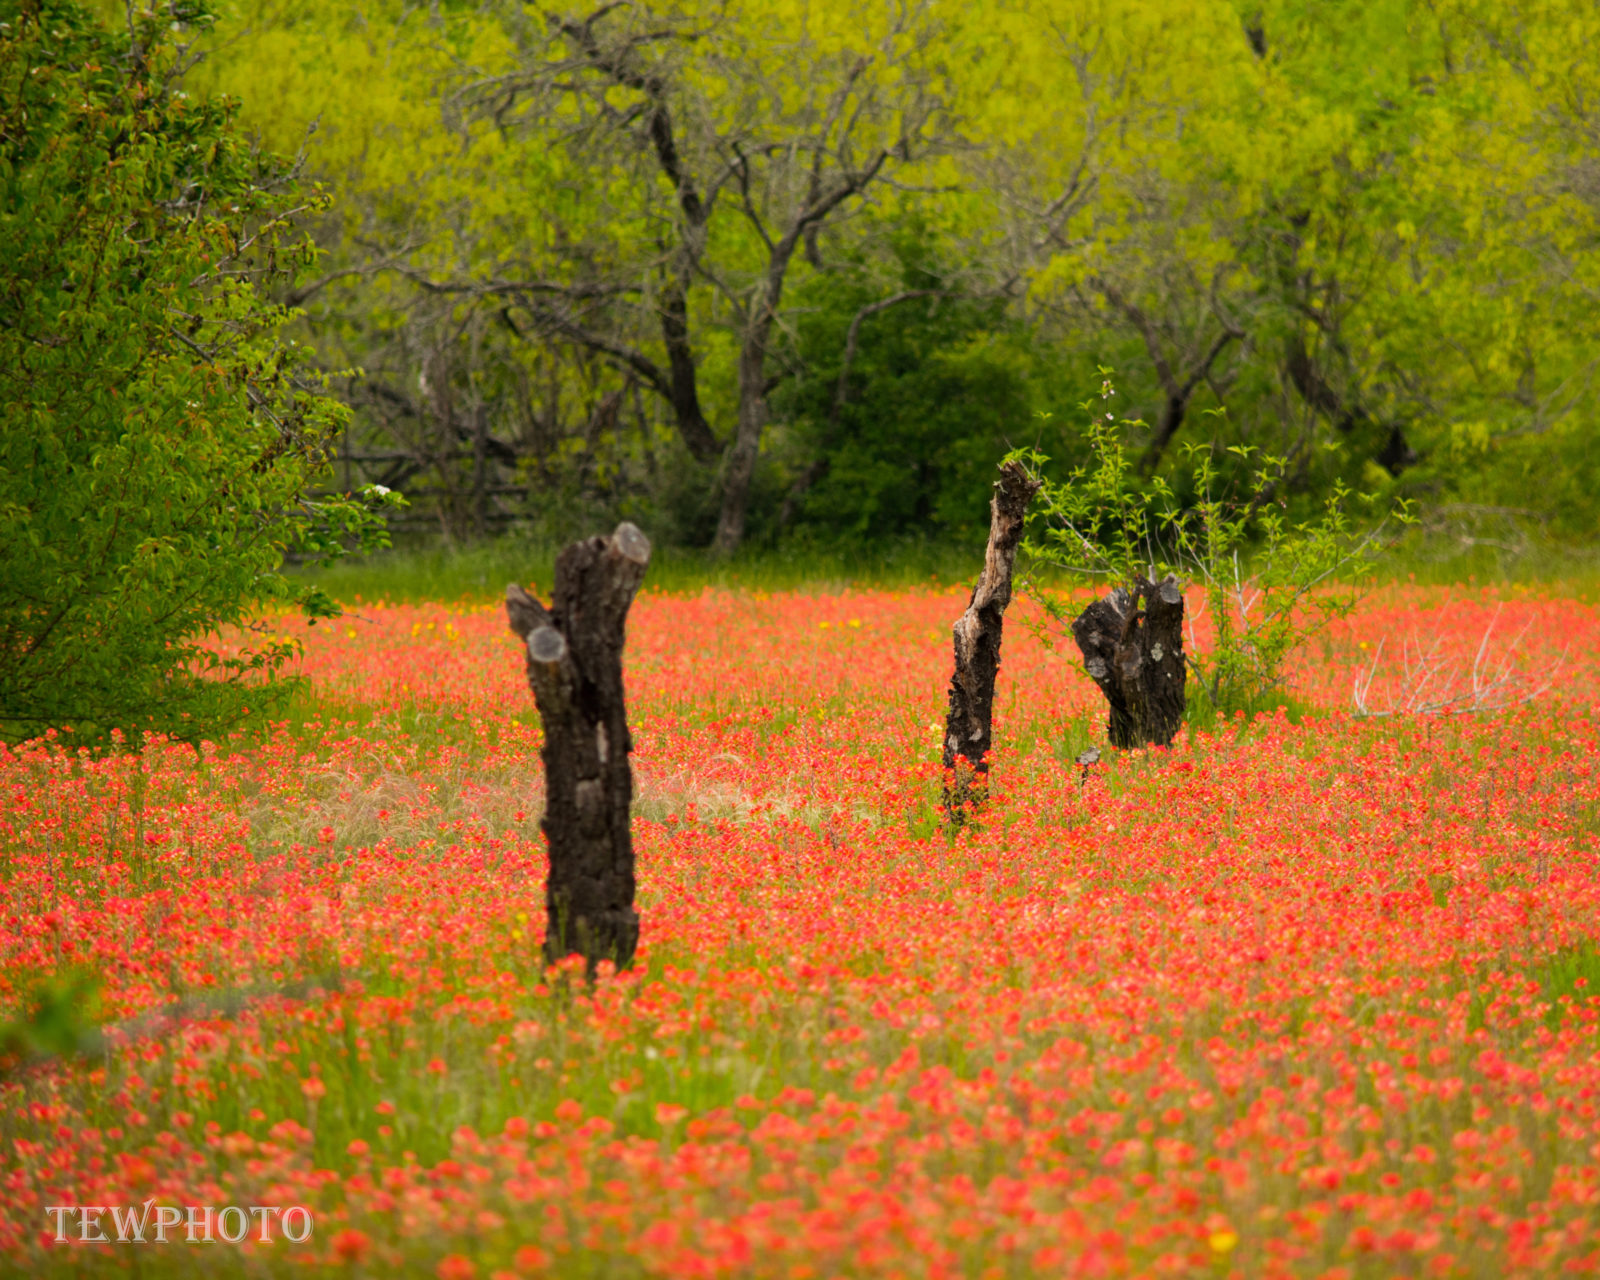 Medow of Indian PaintBrush